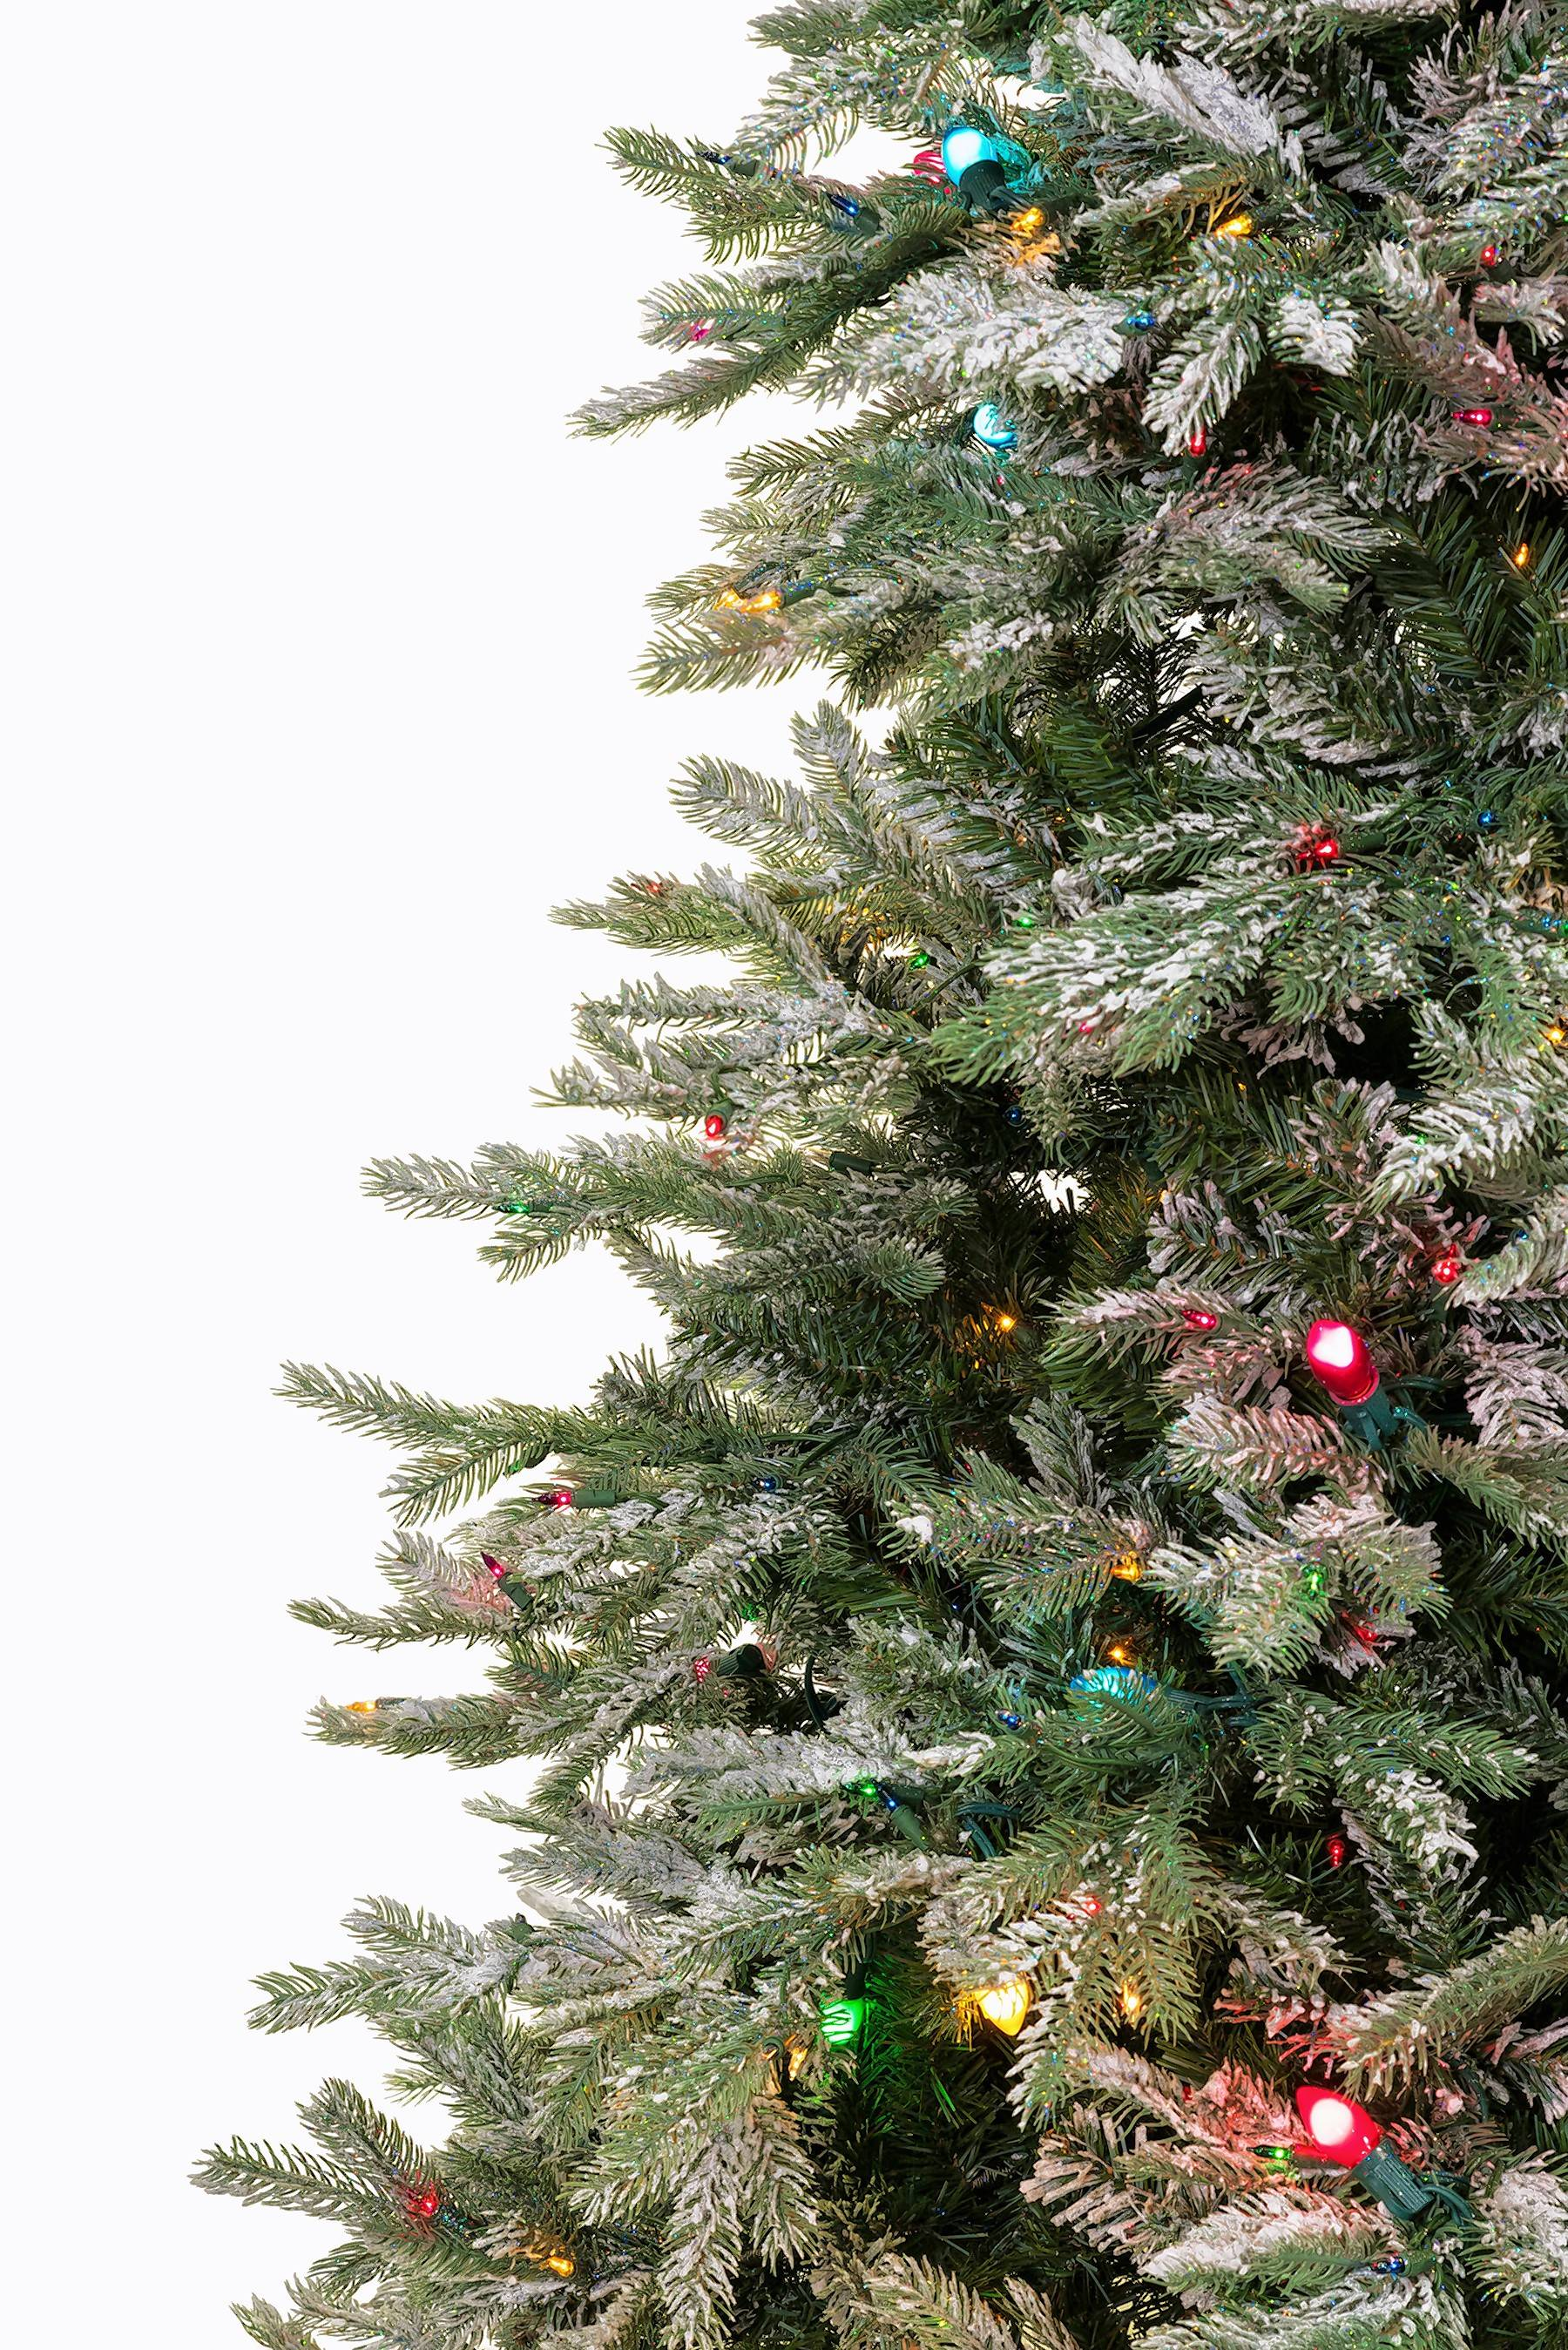 The Twinkling Tannenbaum tree features two types of lights.